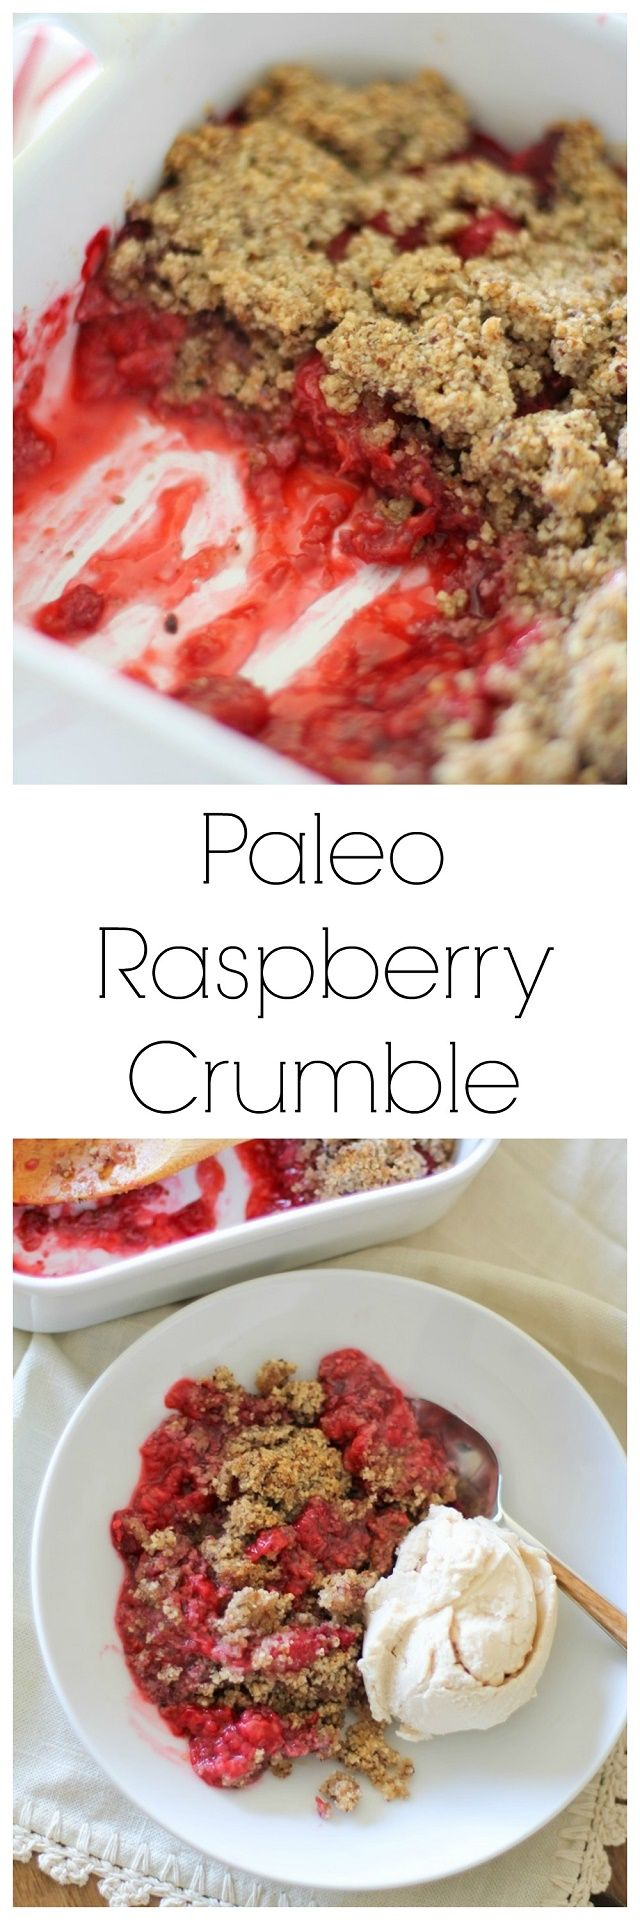 Paleo Raspberry Crumble | really easy crumble topping. You can use corn starch instead of tapioca.